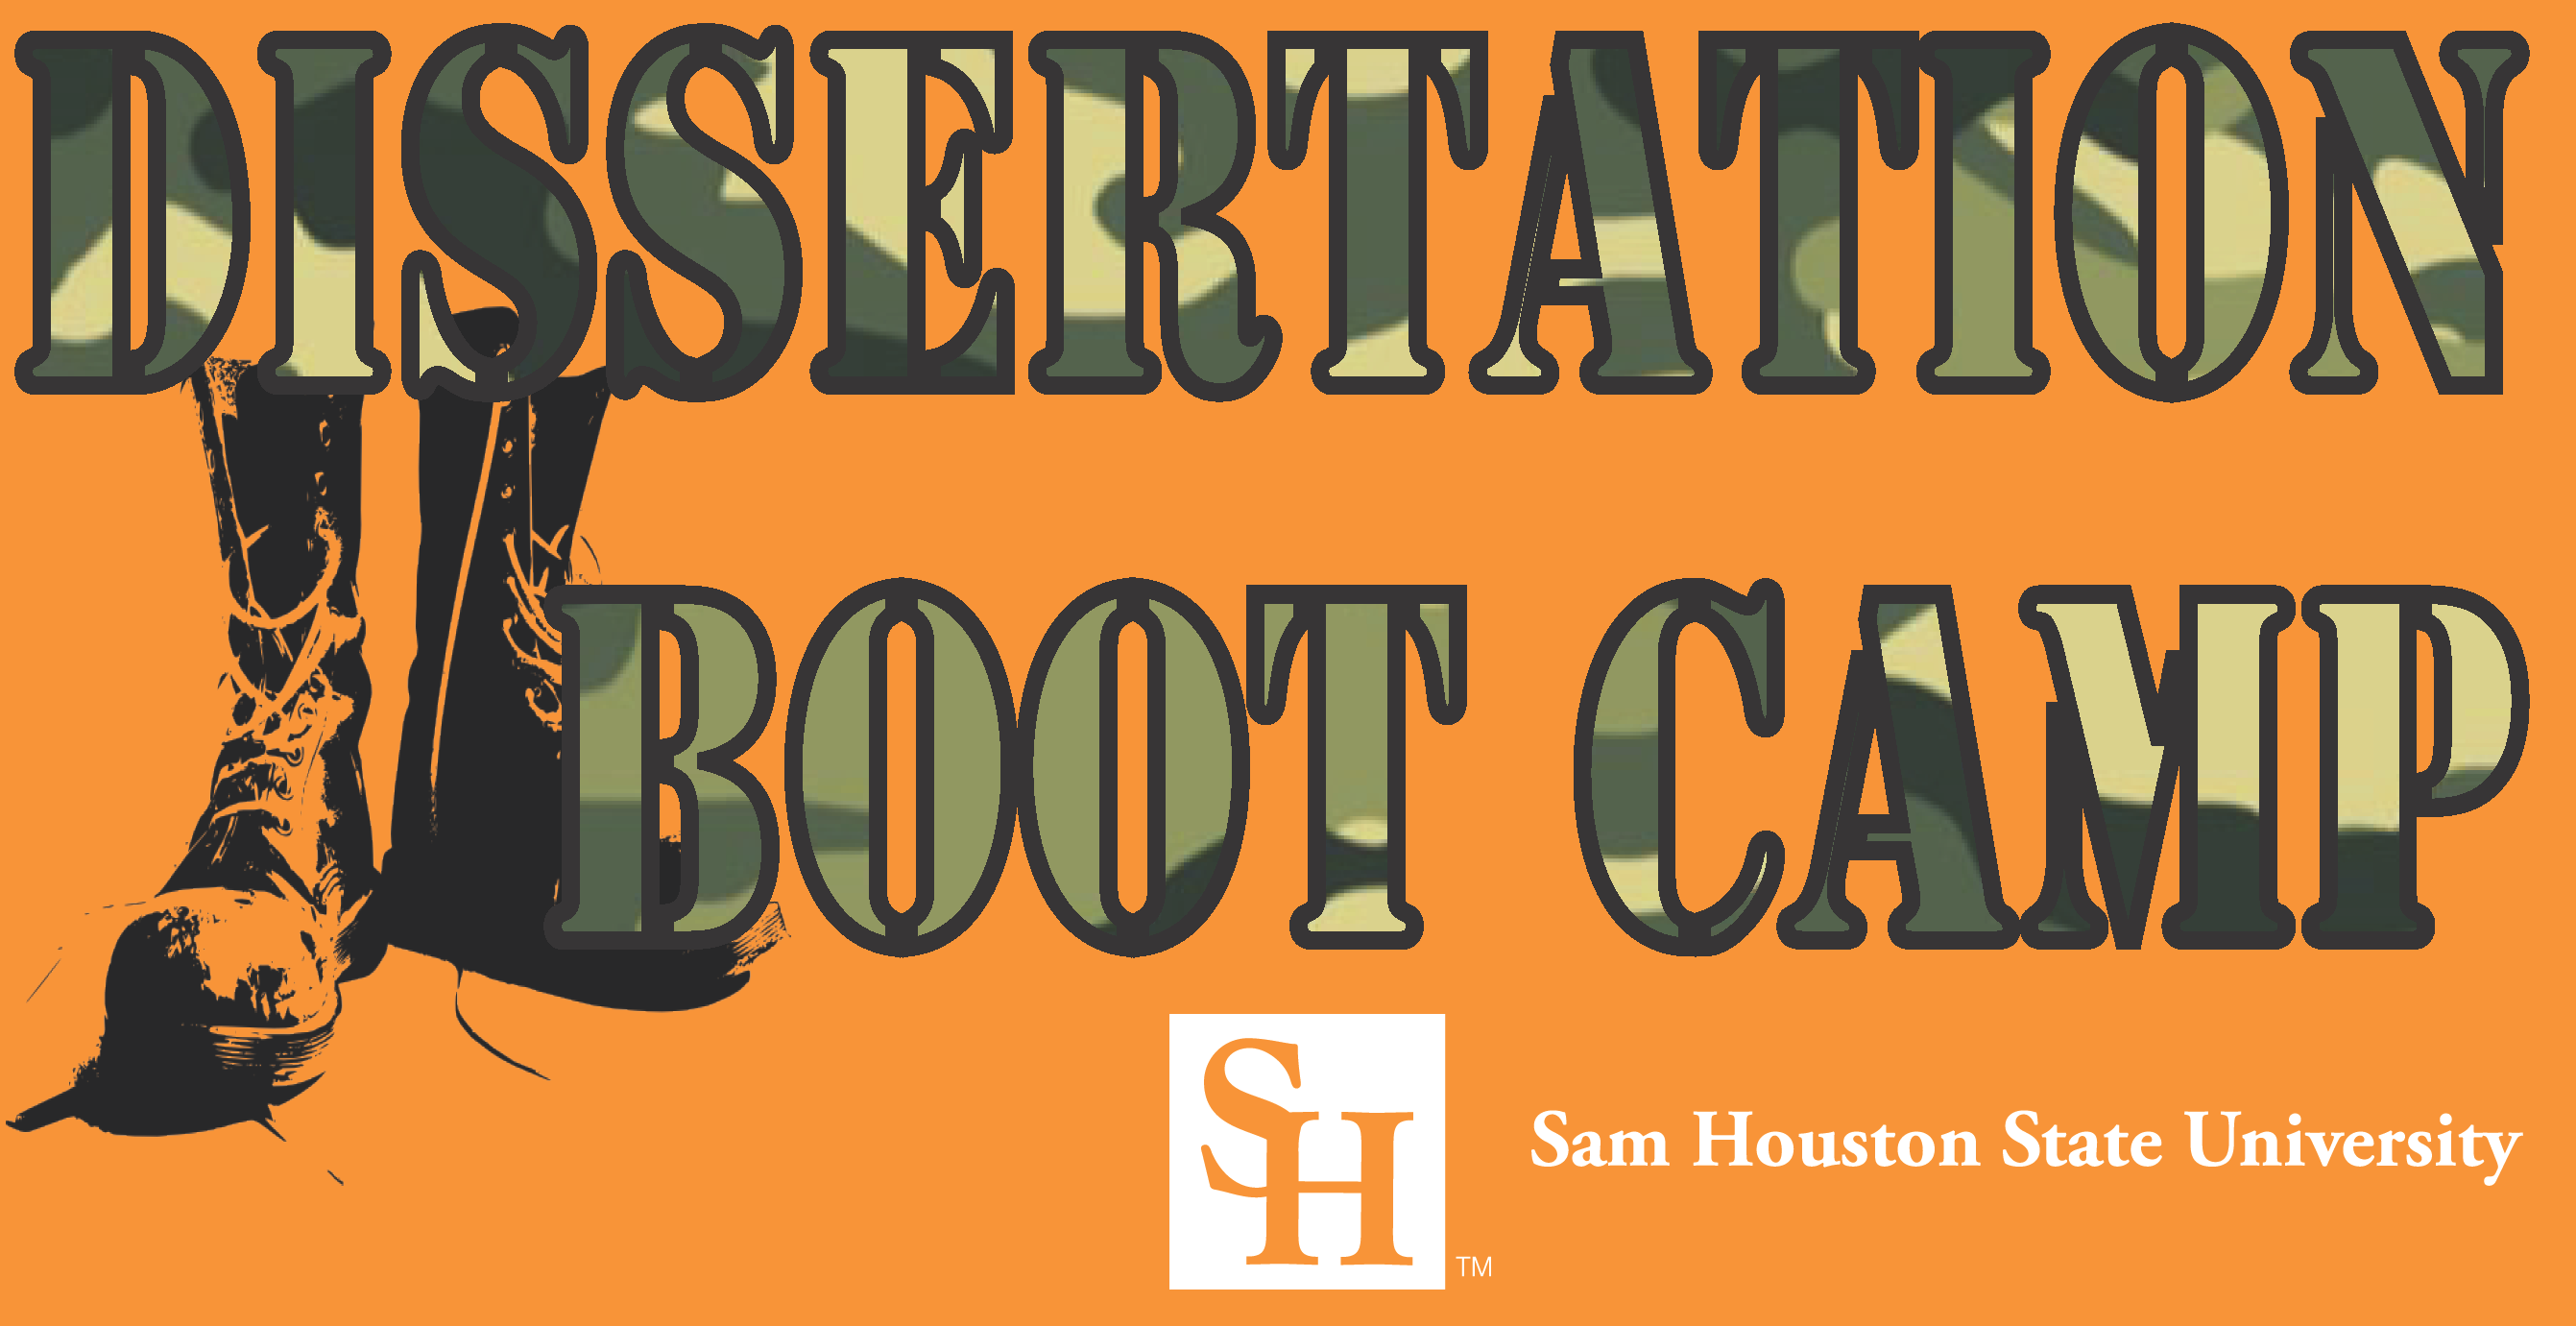 Dissertation boot camp